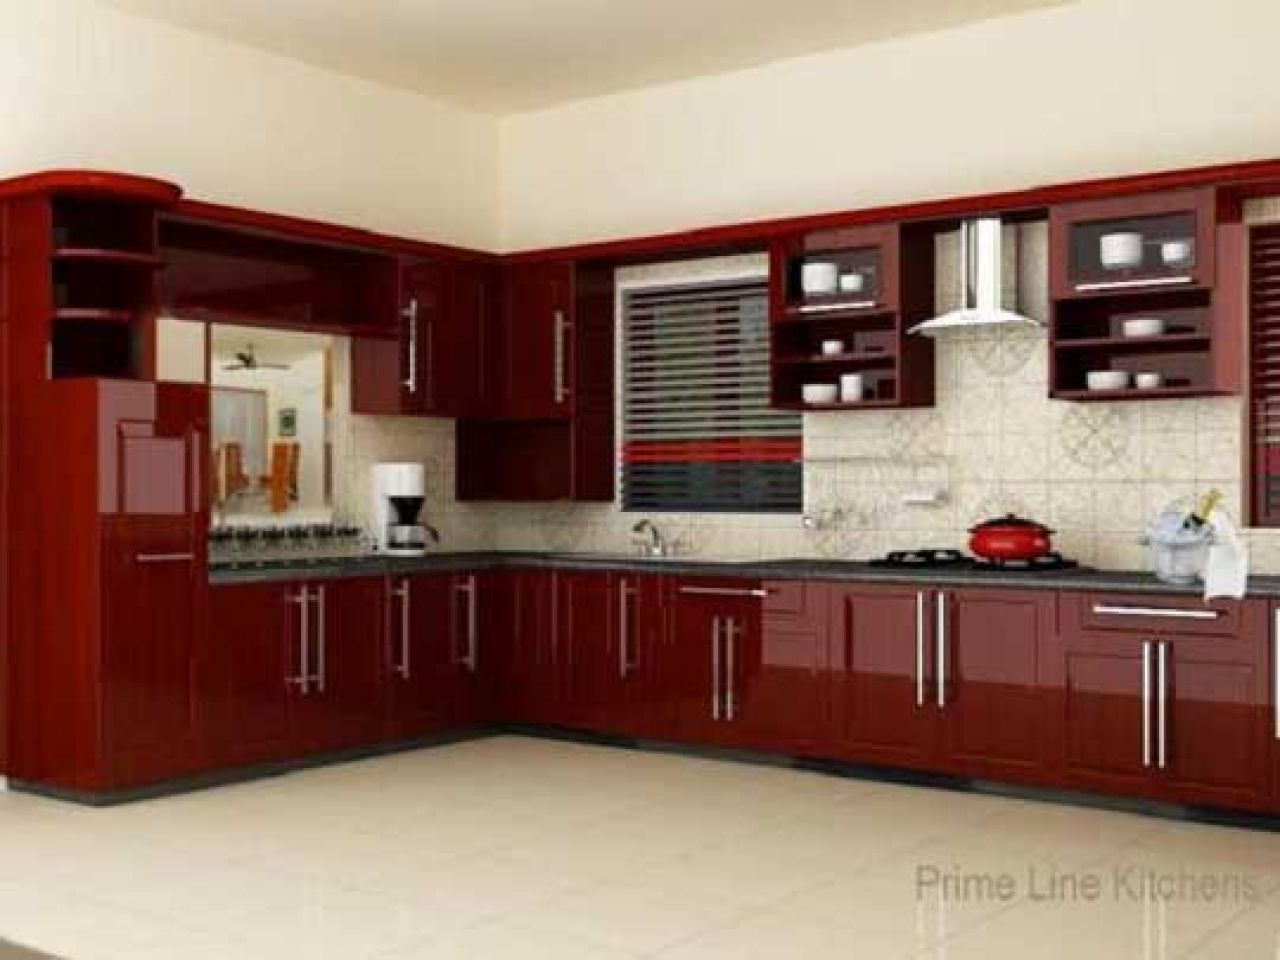 New Model Kitchen Design Kerala conexaowebmix.com  Kitchen